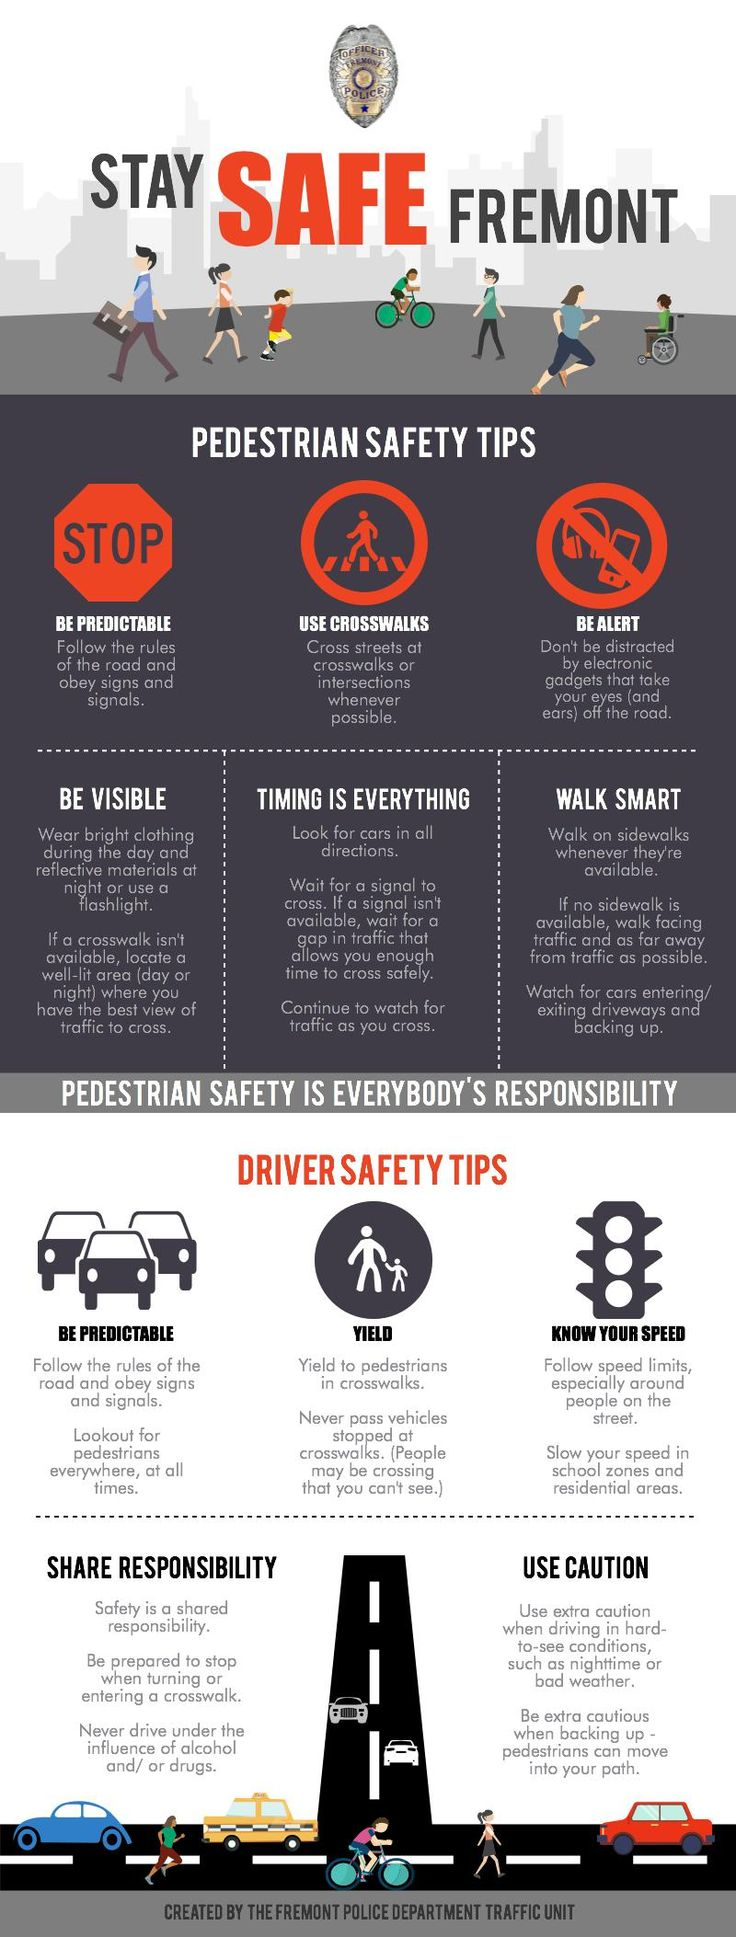 10 best Bicycle and Pedestrian Safety images on Pinterest ...